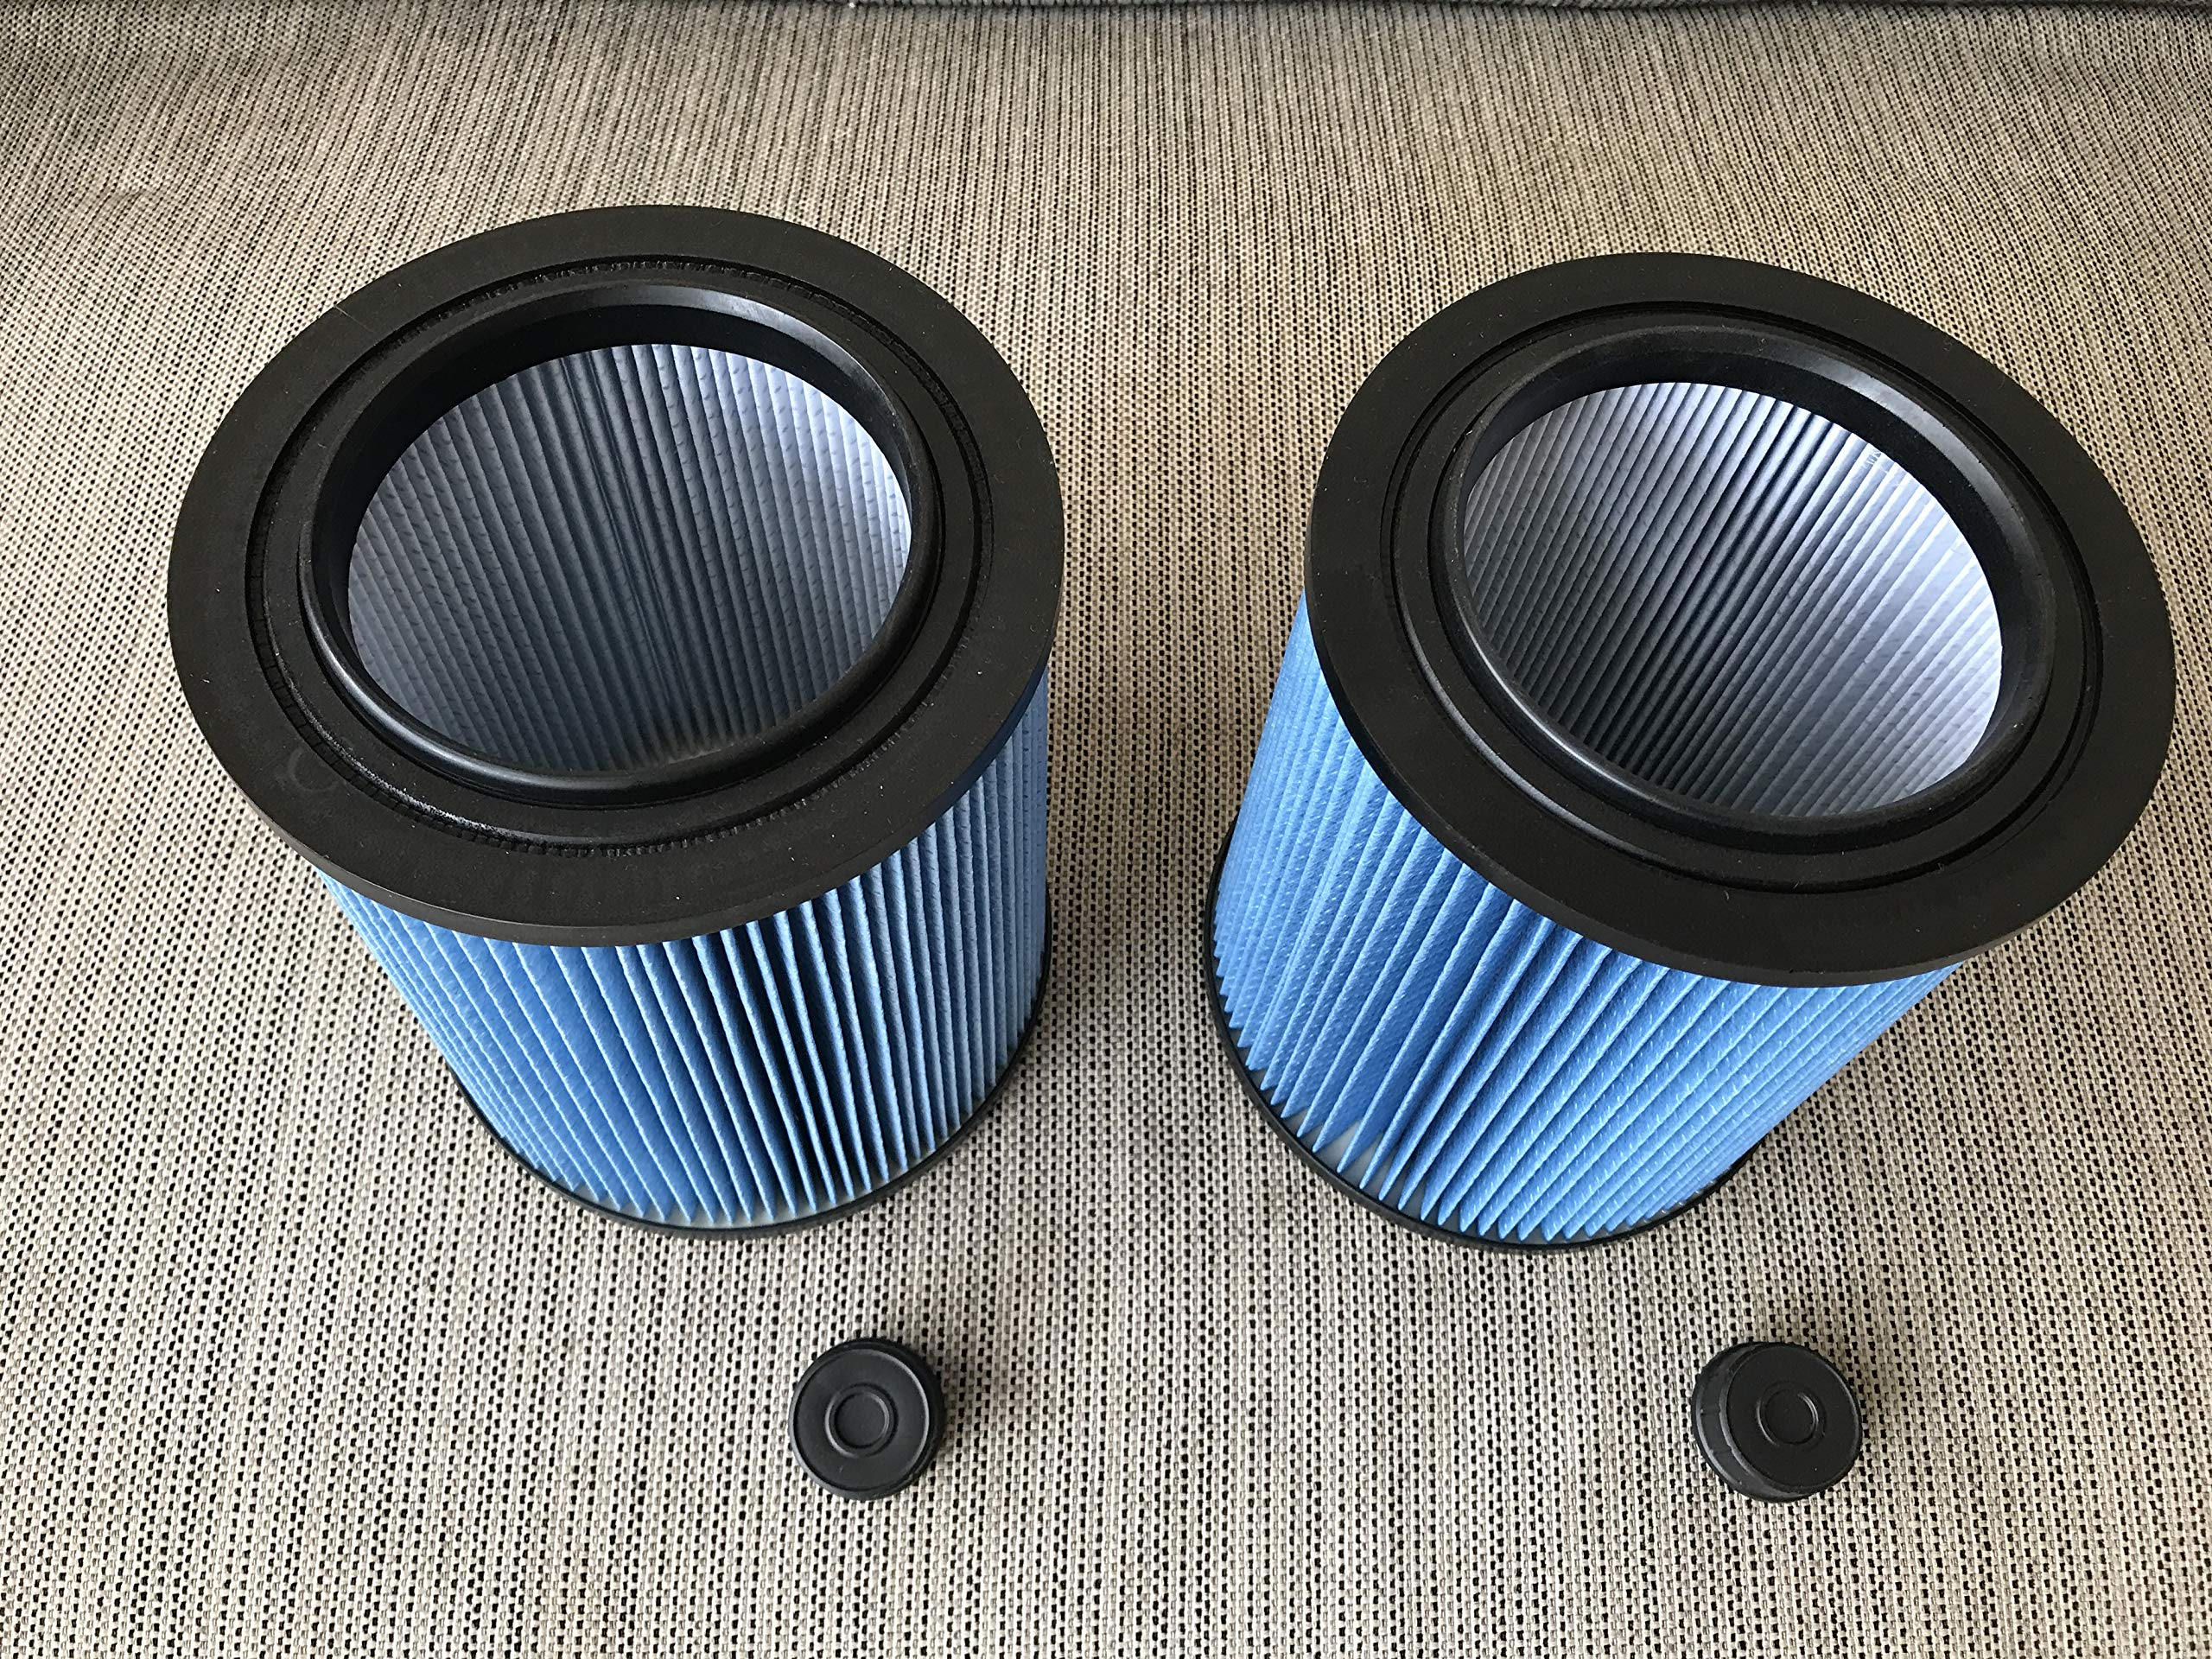 Craftsman 9-17907 Wet Dry Vaccum 2pcs/pk Filters Fine Dust Collection NEW! by KLEAN AIR